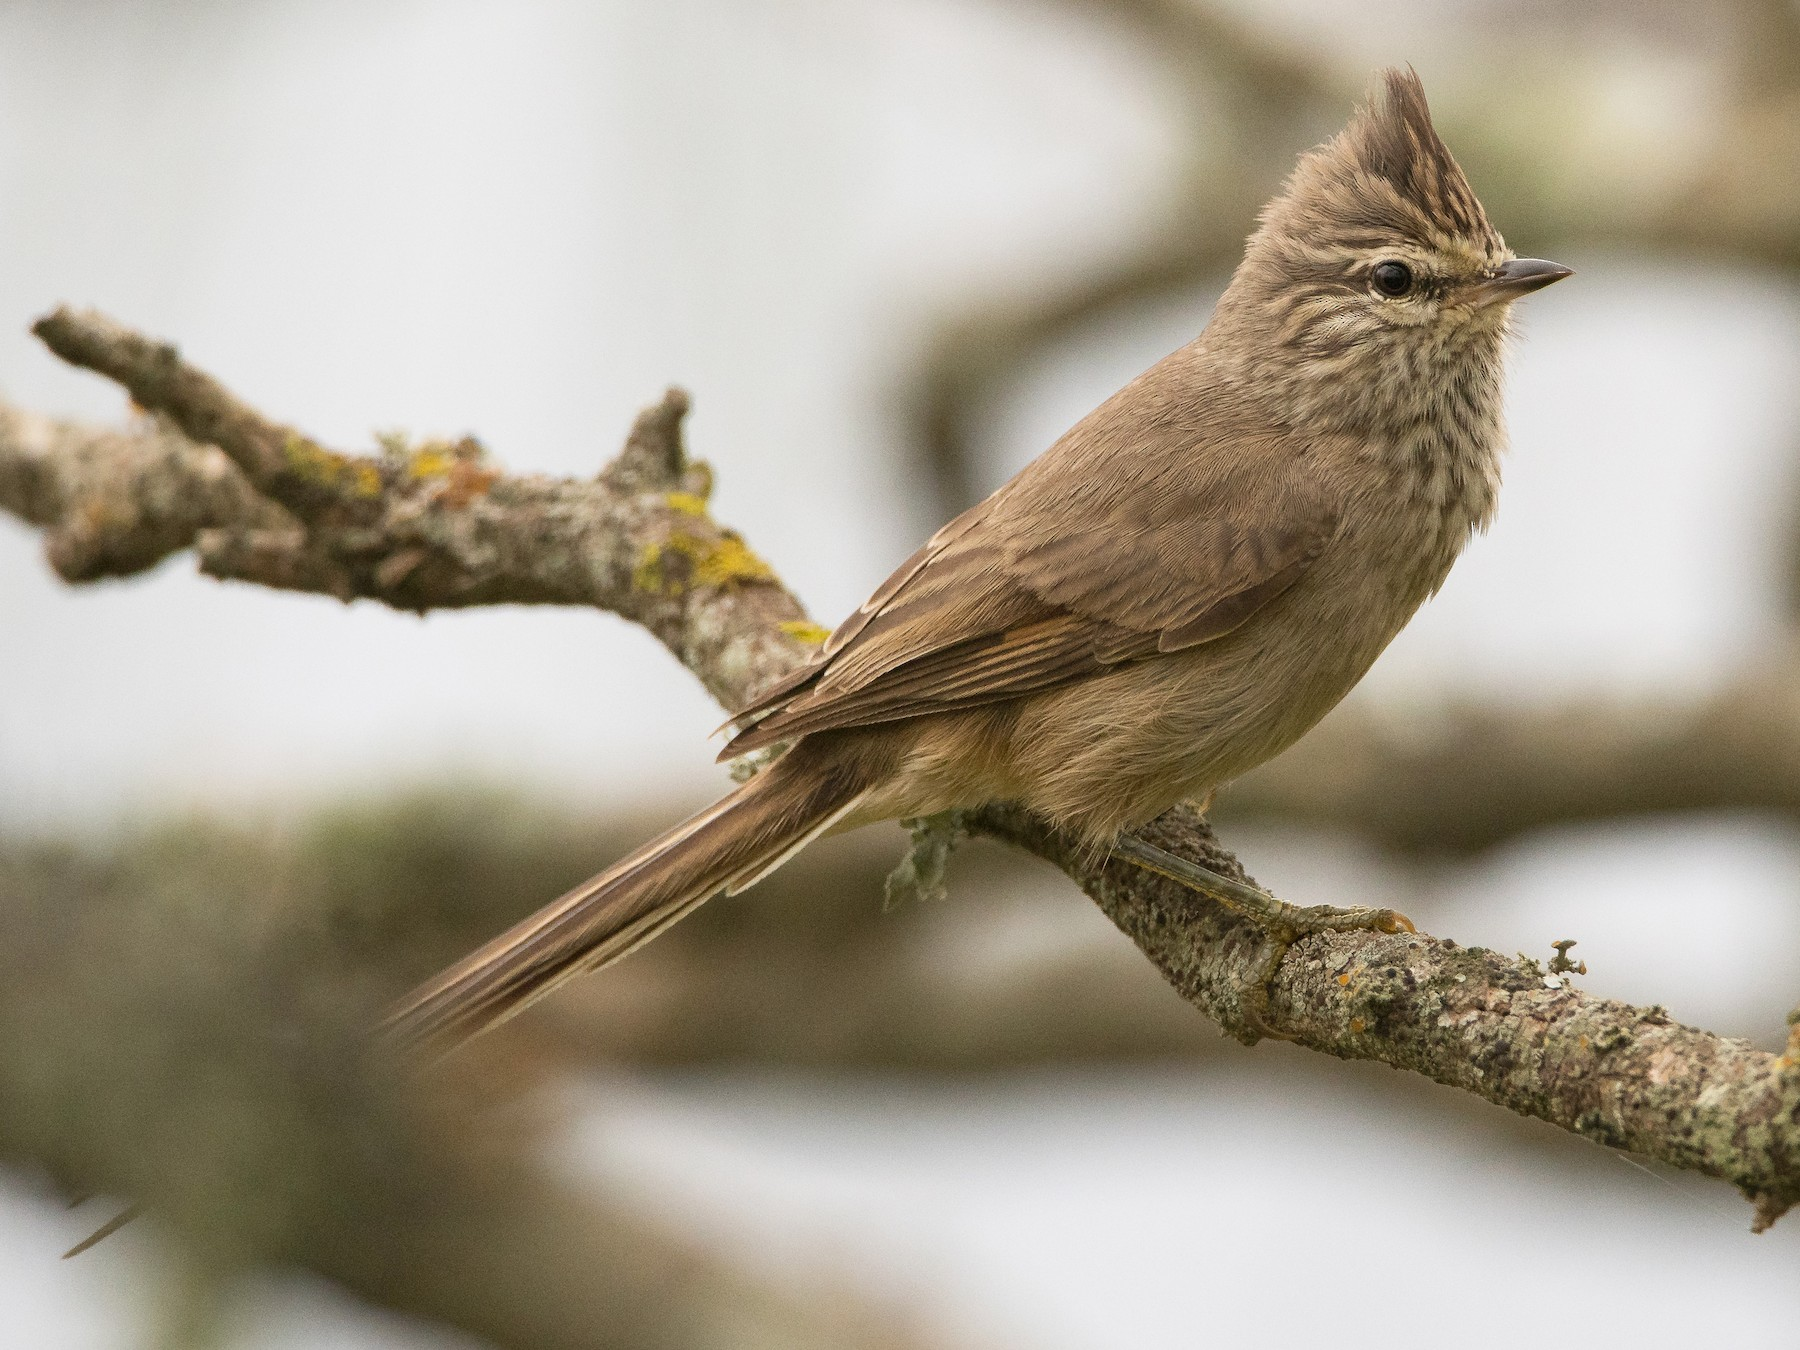 Tufted Tit-Spinetail - Pablo Re